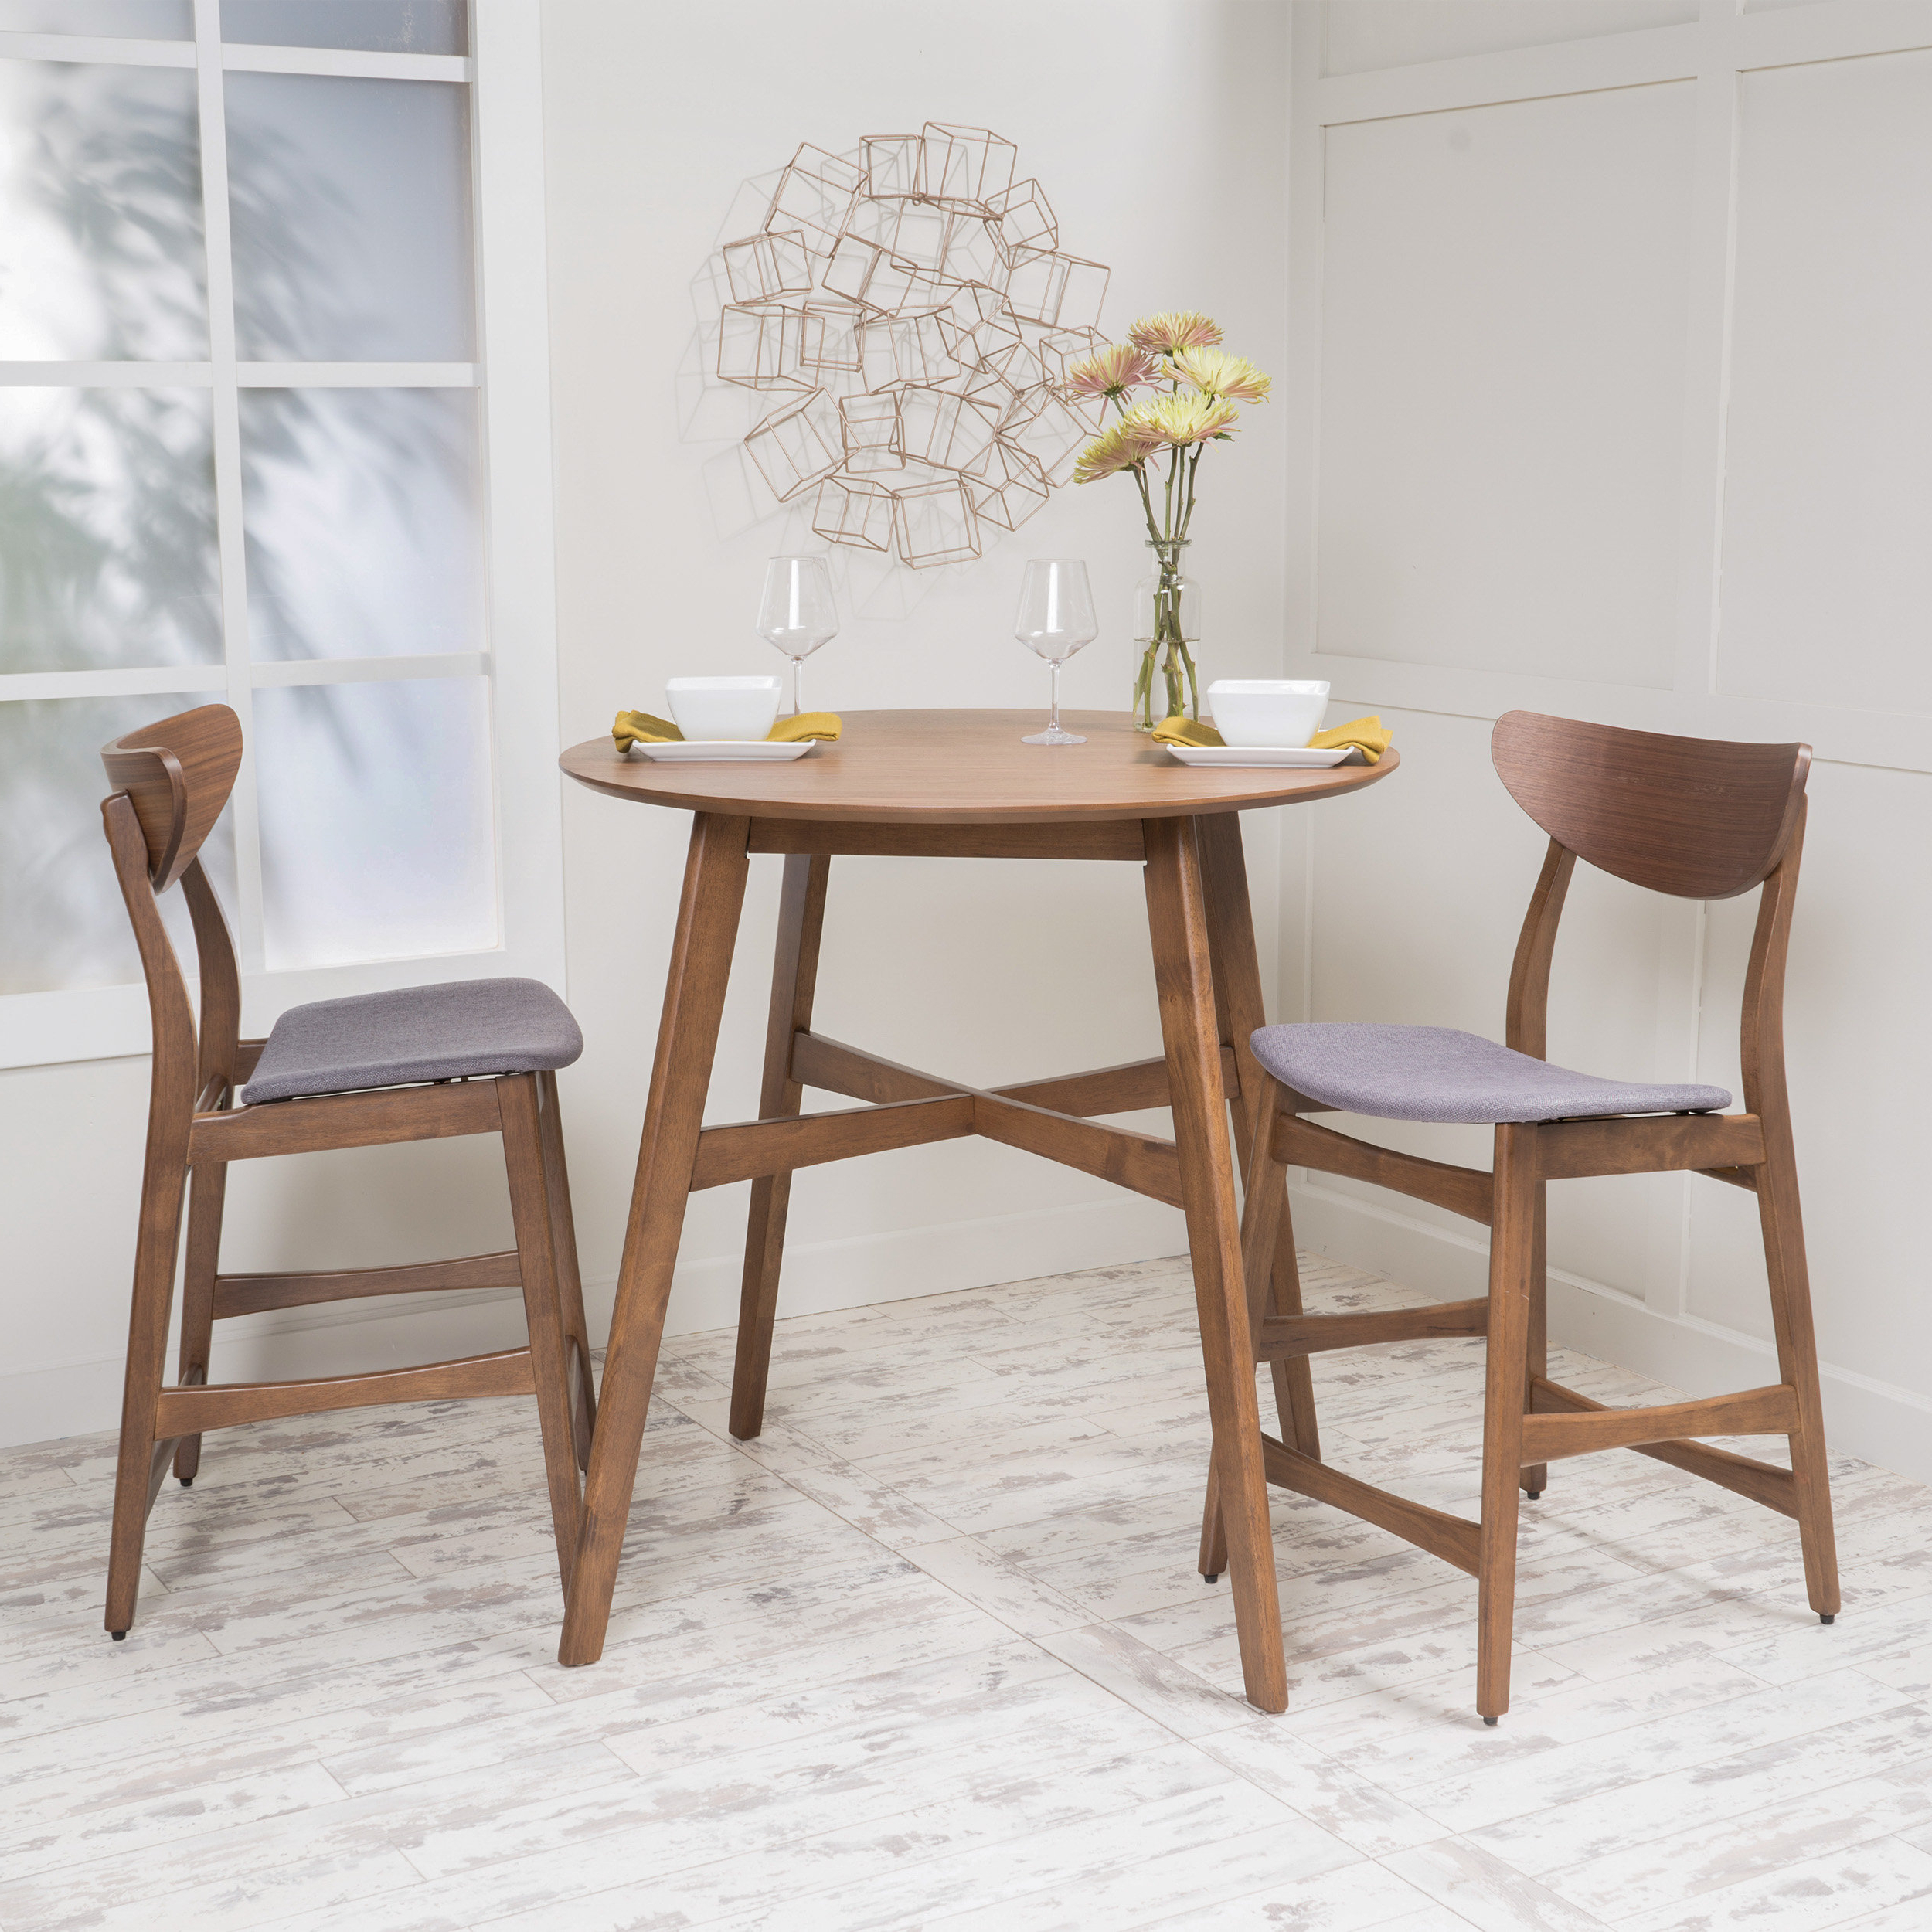 Mizpah 3 Piece Counter Height Dining Sets Regarding Famous 3 Piece Dining Set Counter Height – Ingamecity – (View 9 of 20)